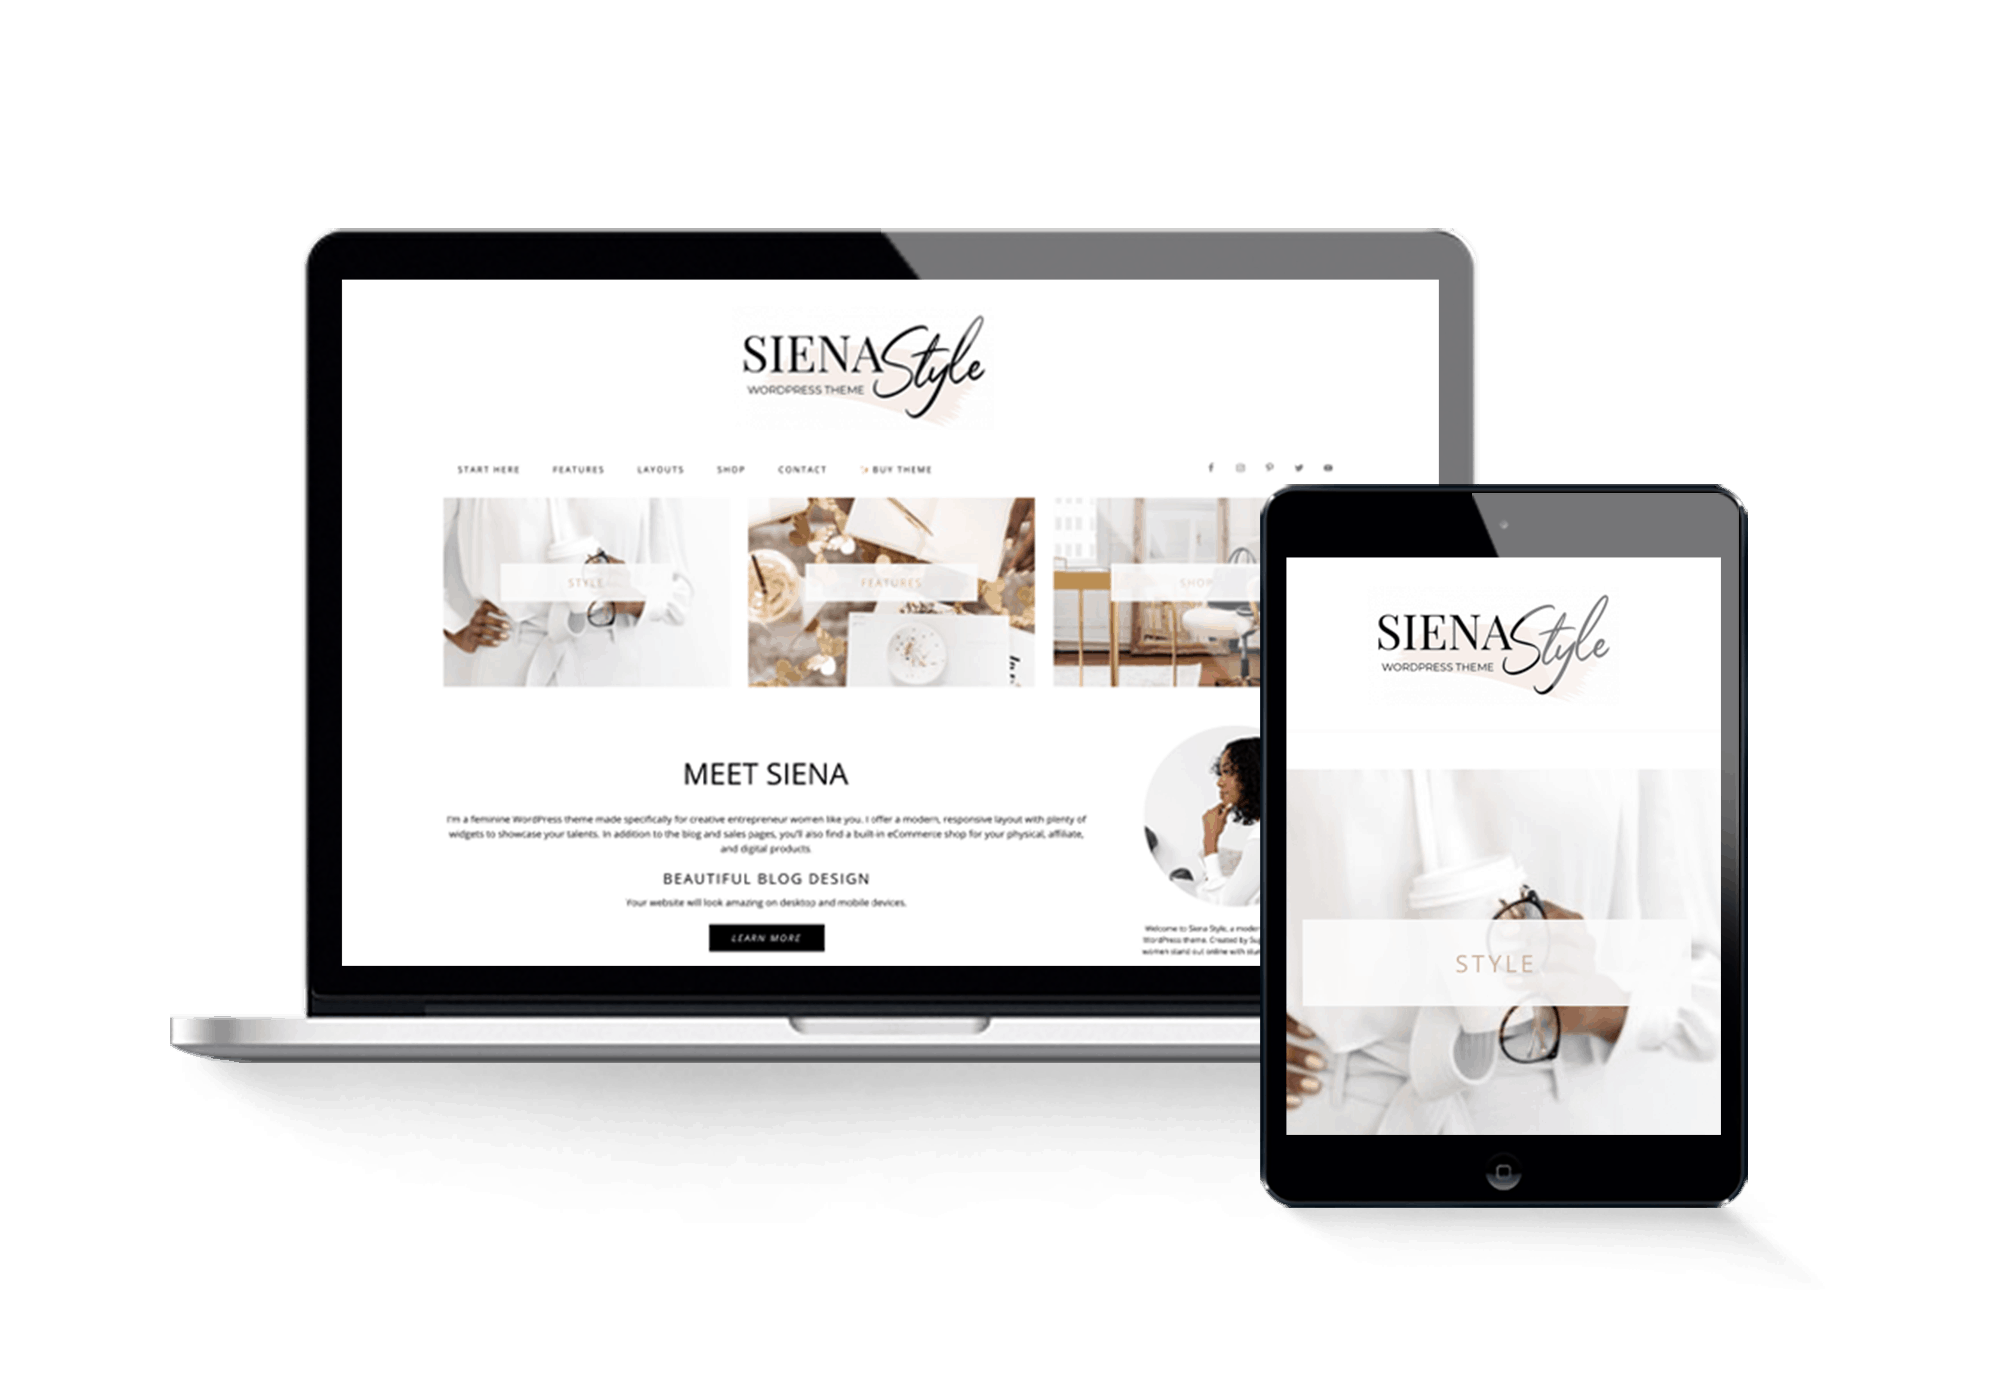 siena style wordpress theme feminine modern minimal clean pretty blog layout